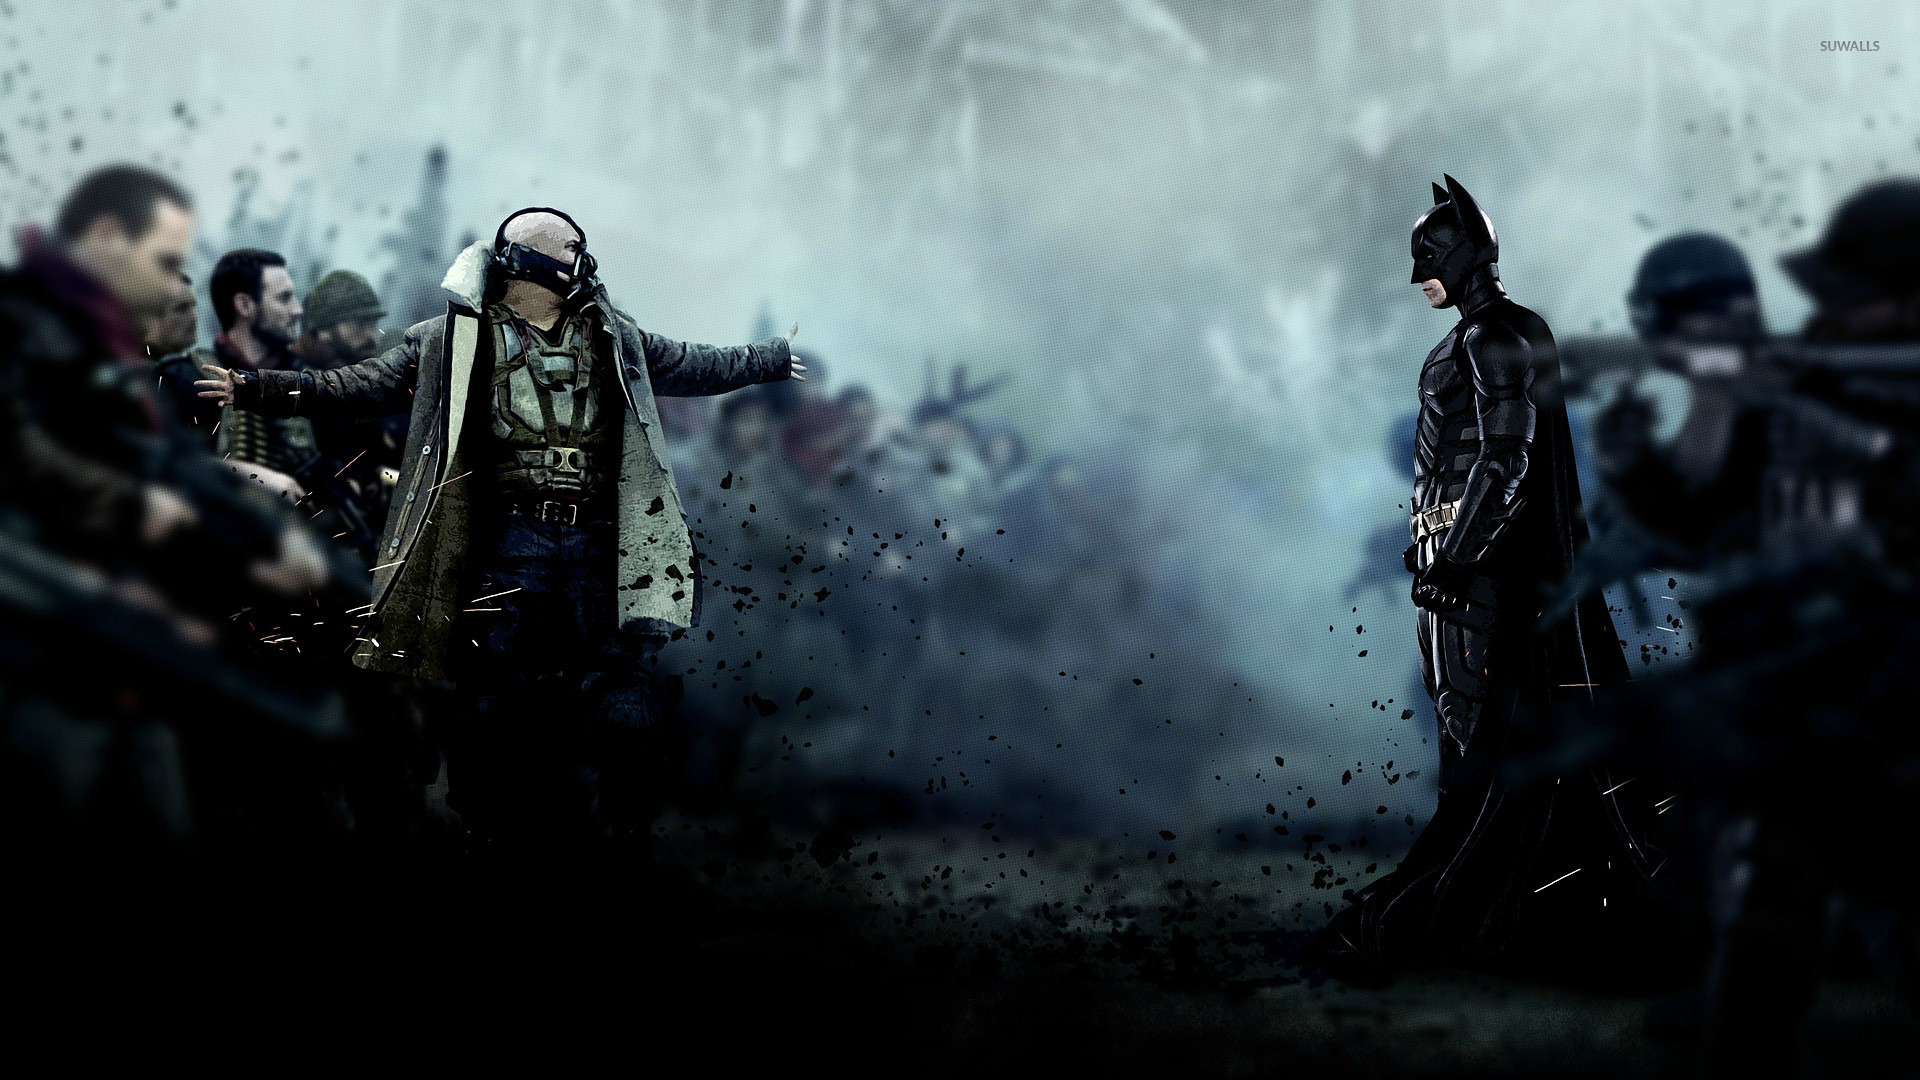 Joker Vs Batman Wallpaper